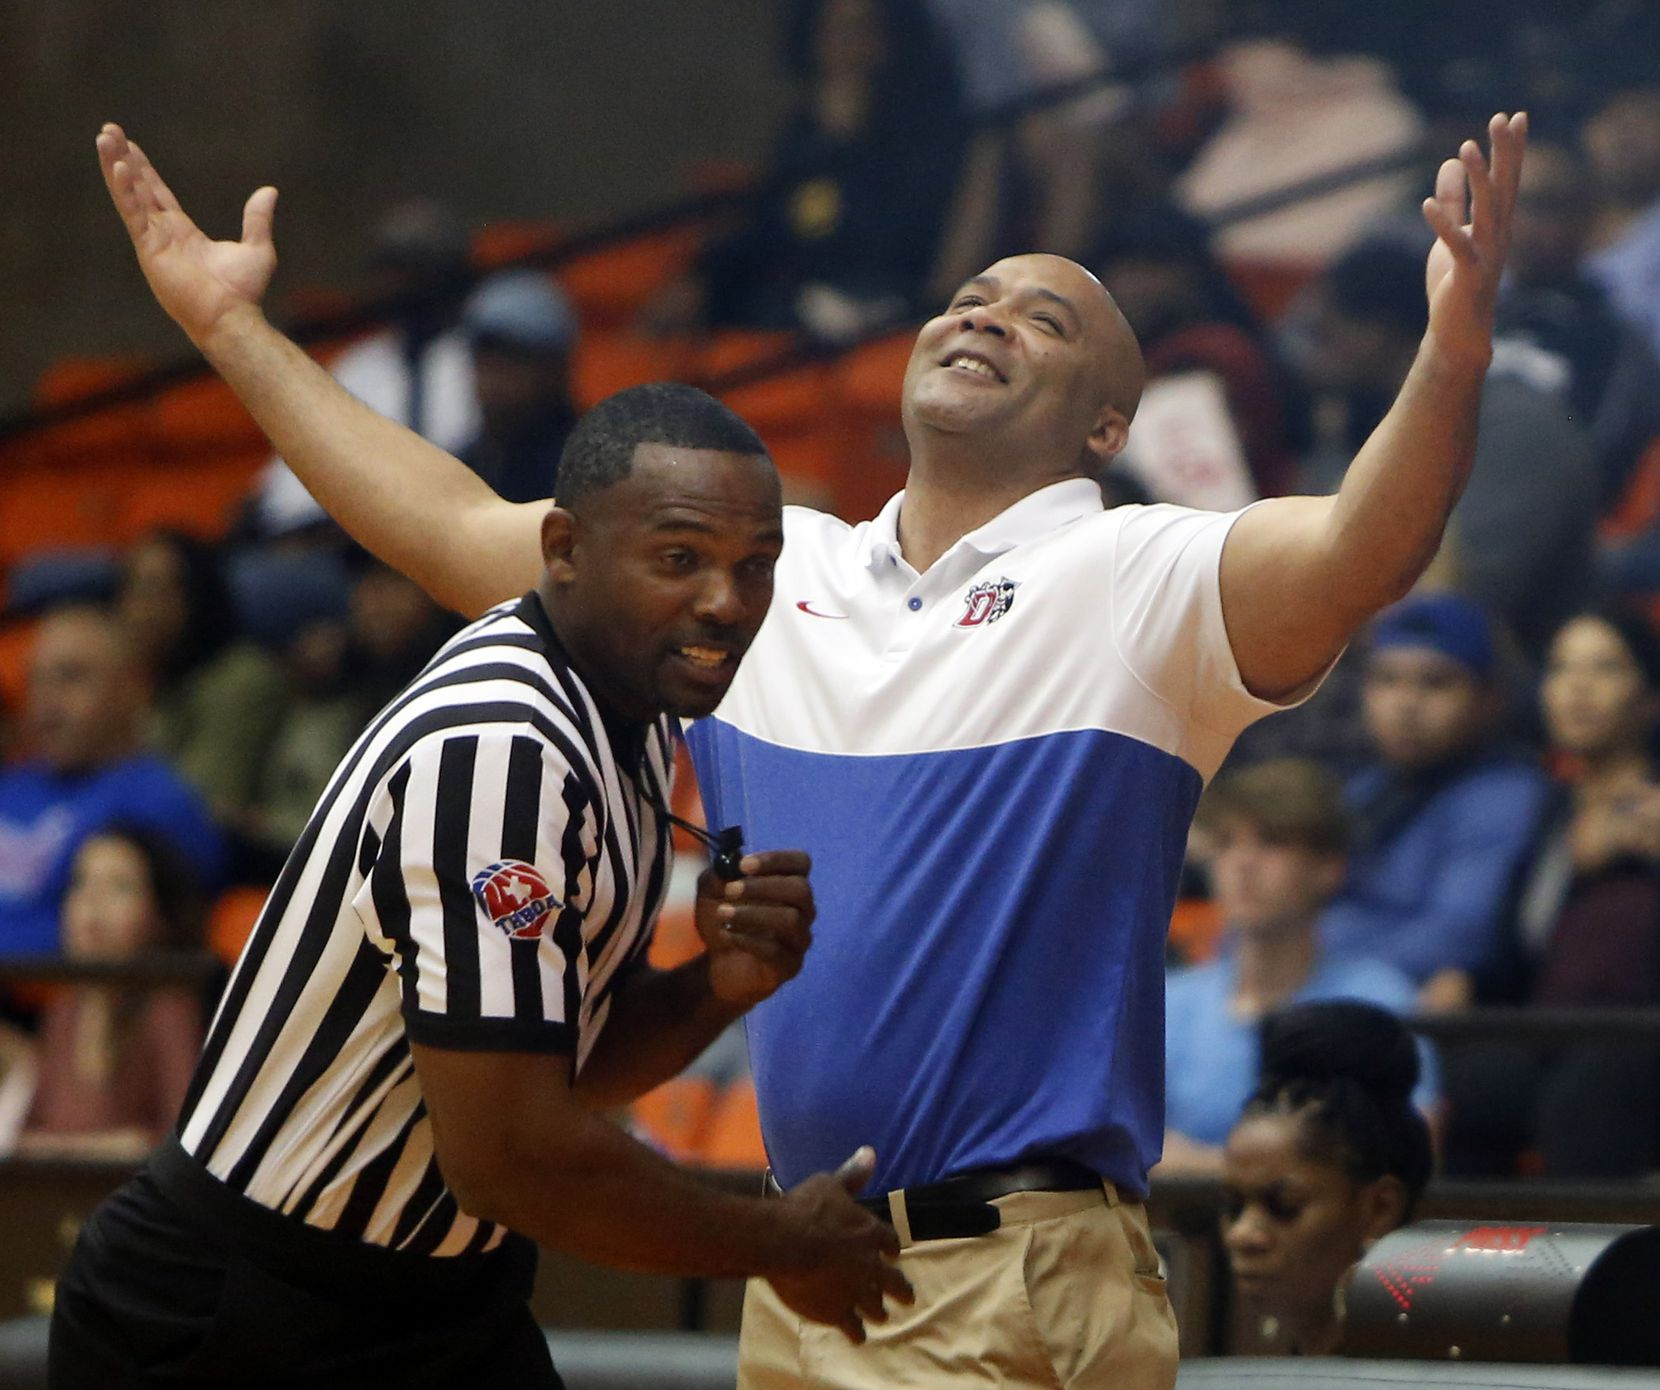 Duncanville head coach David Peavy reacts after his case on a missed call appeared to fall on deaf ears as the game official turns back to the action on the court during the second half of play. Duncanville prevailed 59-43 to gain a berth in the UIL state tournament. The two teams played in the Class 6A Region 1 championship boys basketball playoff game at Wilkerson-Greines Activity Center in Fort Worth on March 7, 2020.